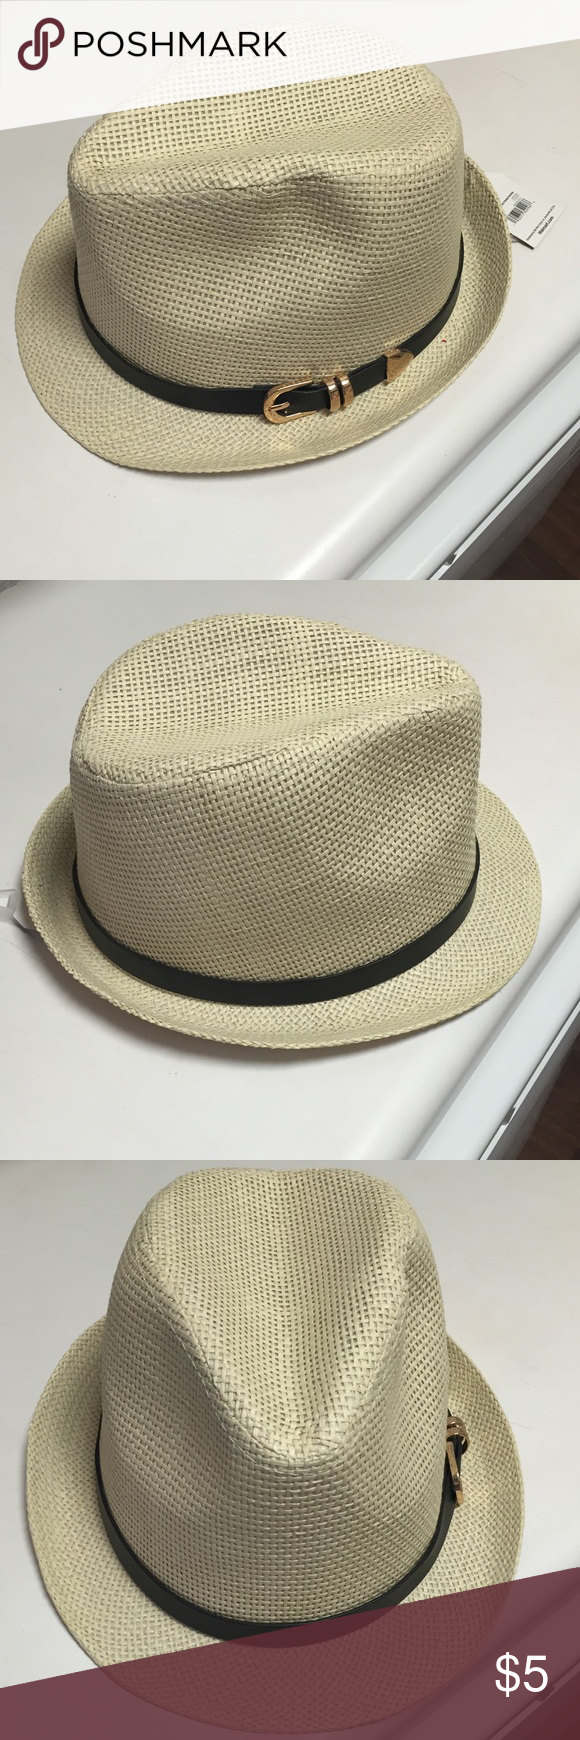 b4e434cce90d3 Women s Straw Fedora-new with tags Women s straw fedora hat. Hat has black  belt with gold buckle. Hat is brand new with tags. Design is great for  beach and ...